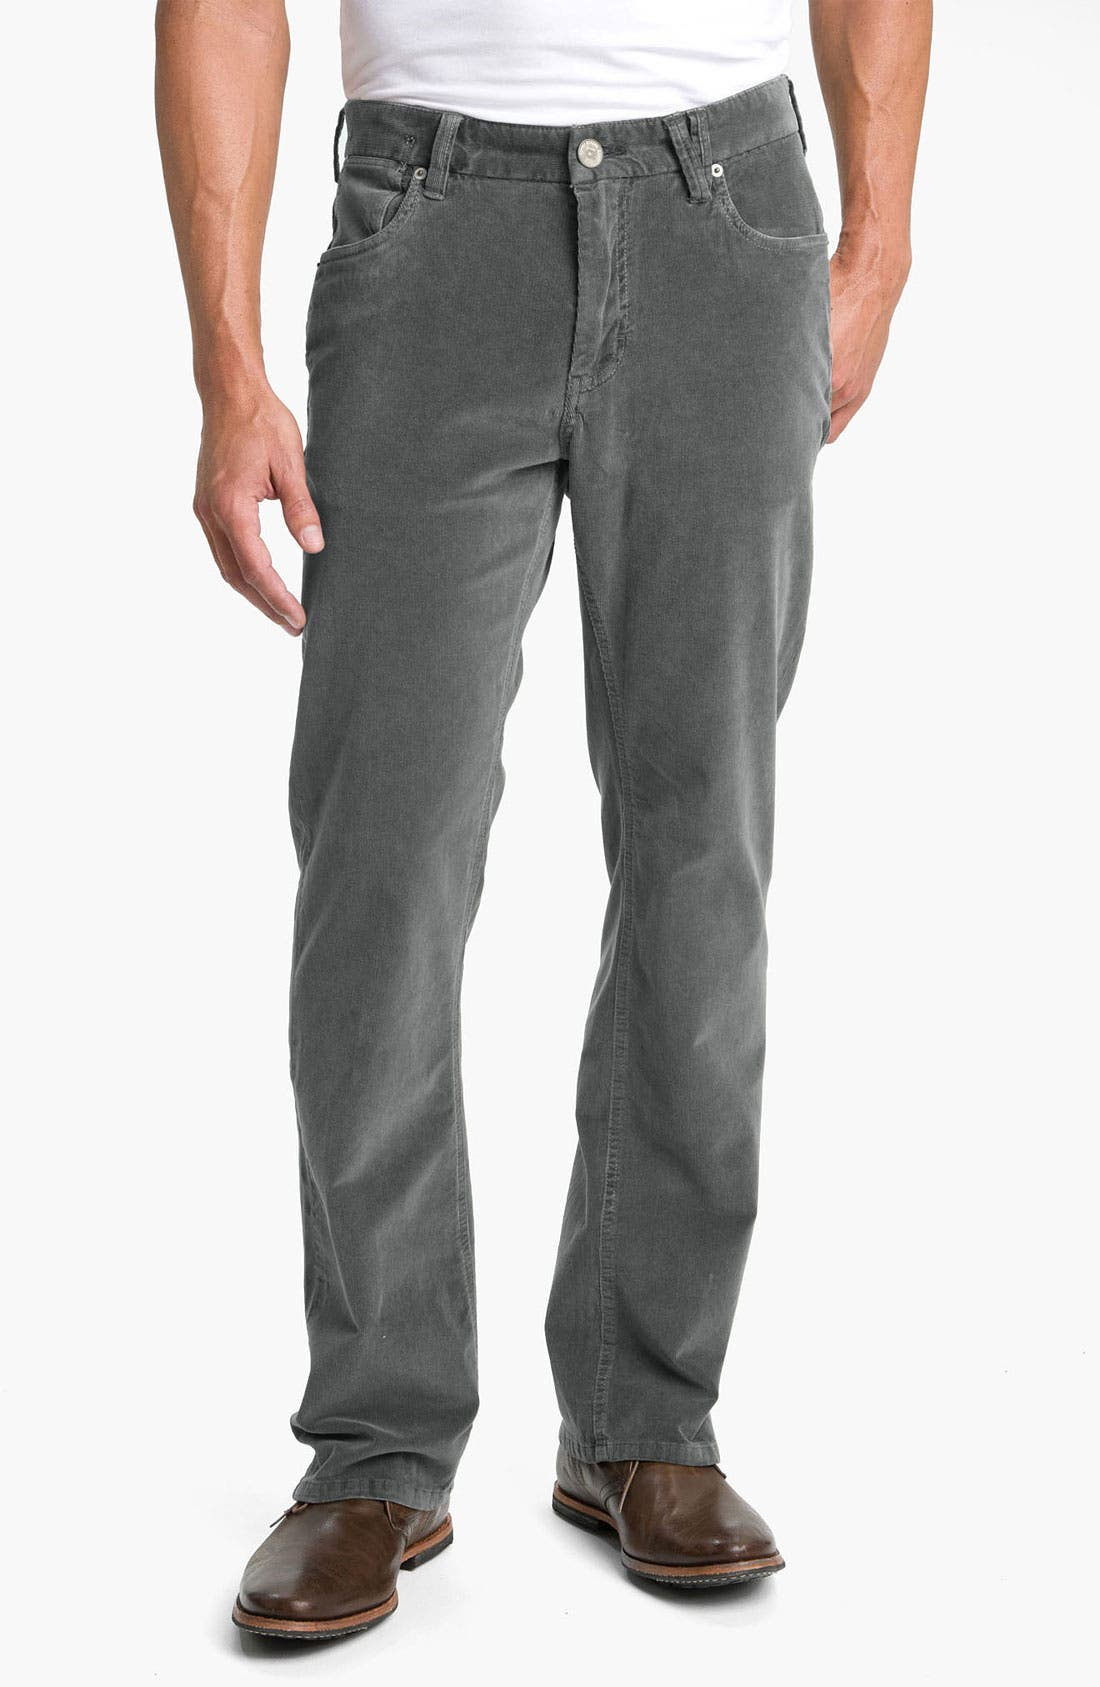 Alternate Image 1 Selected - Tommy Bahama Denim 'Jenson' Standard Straight Leg Pants